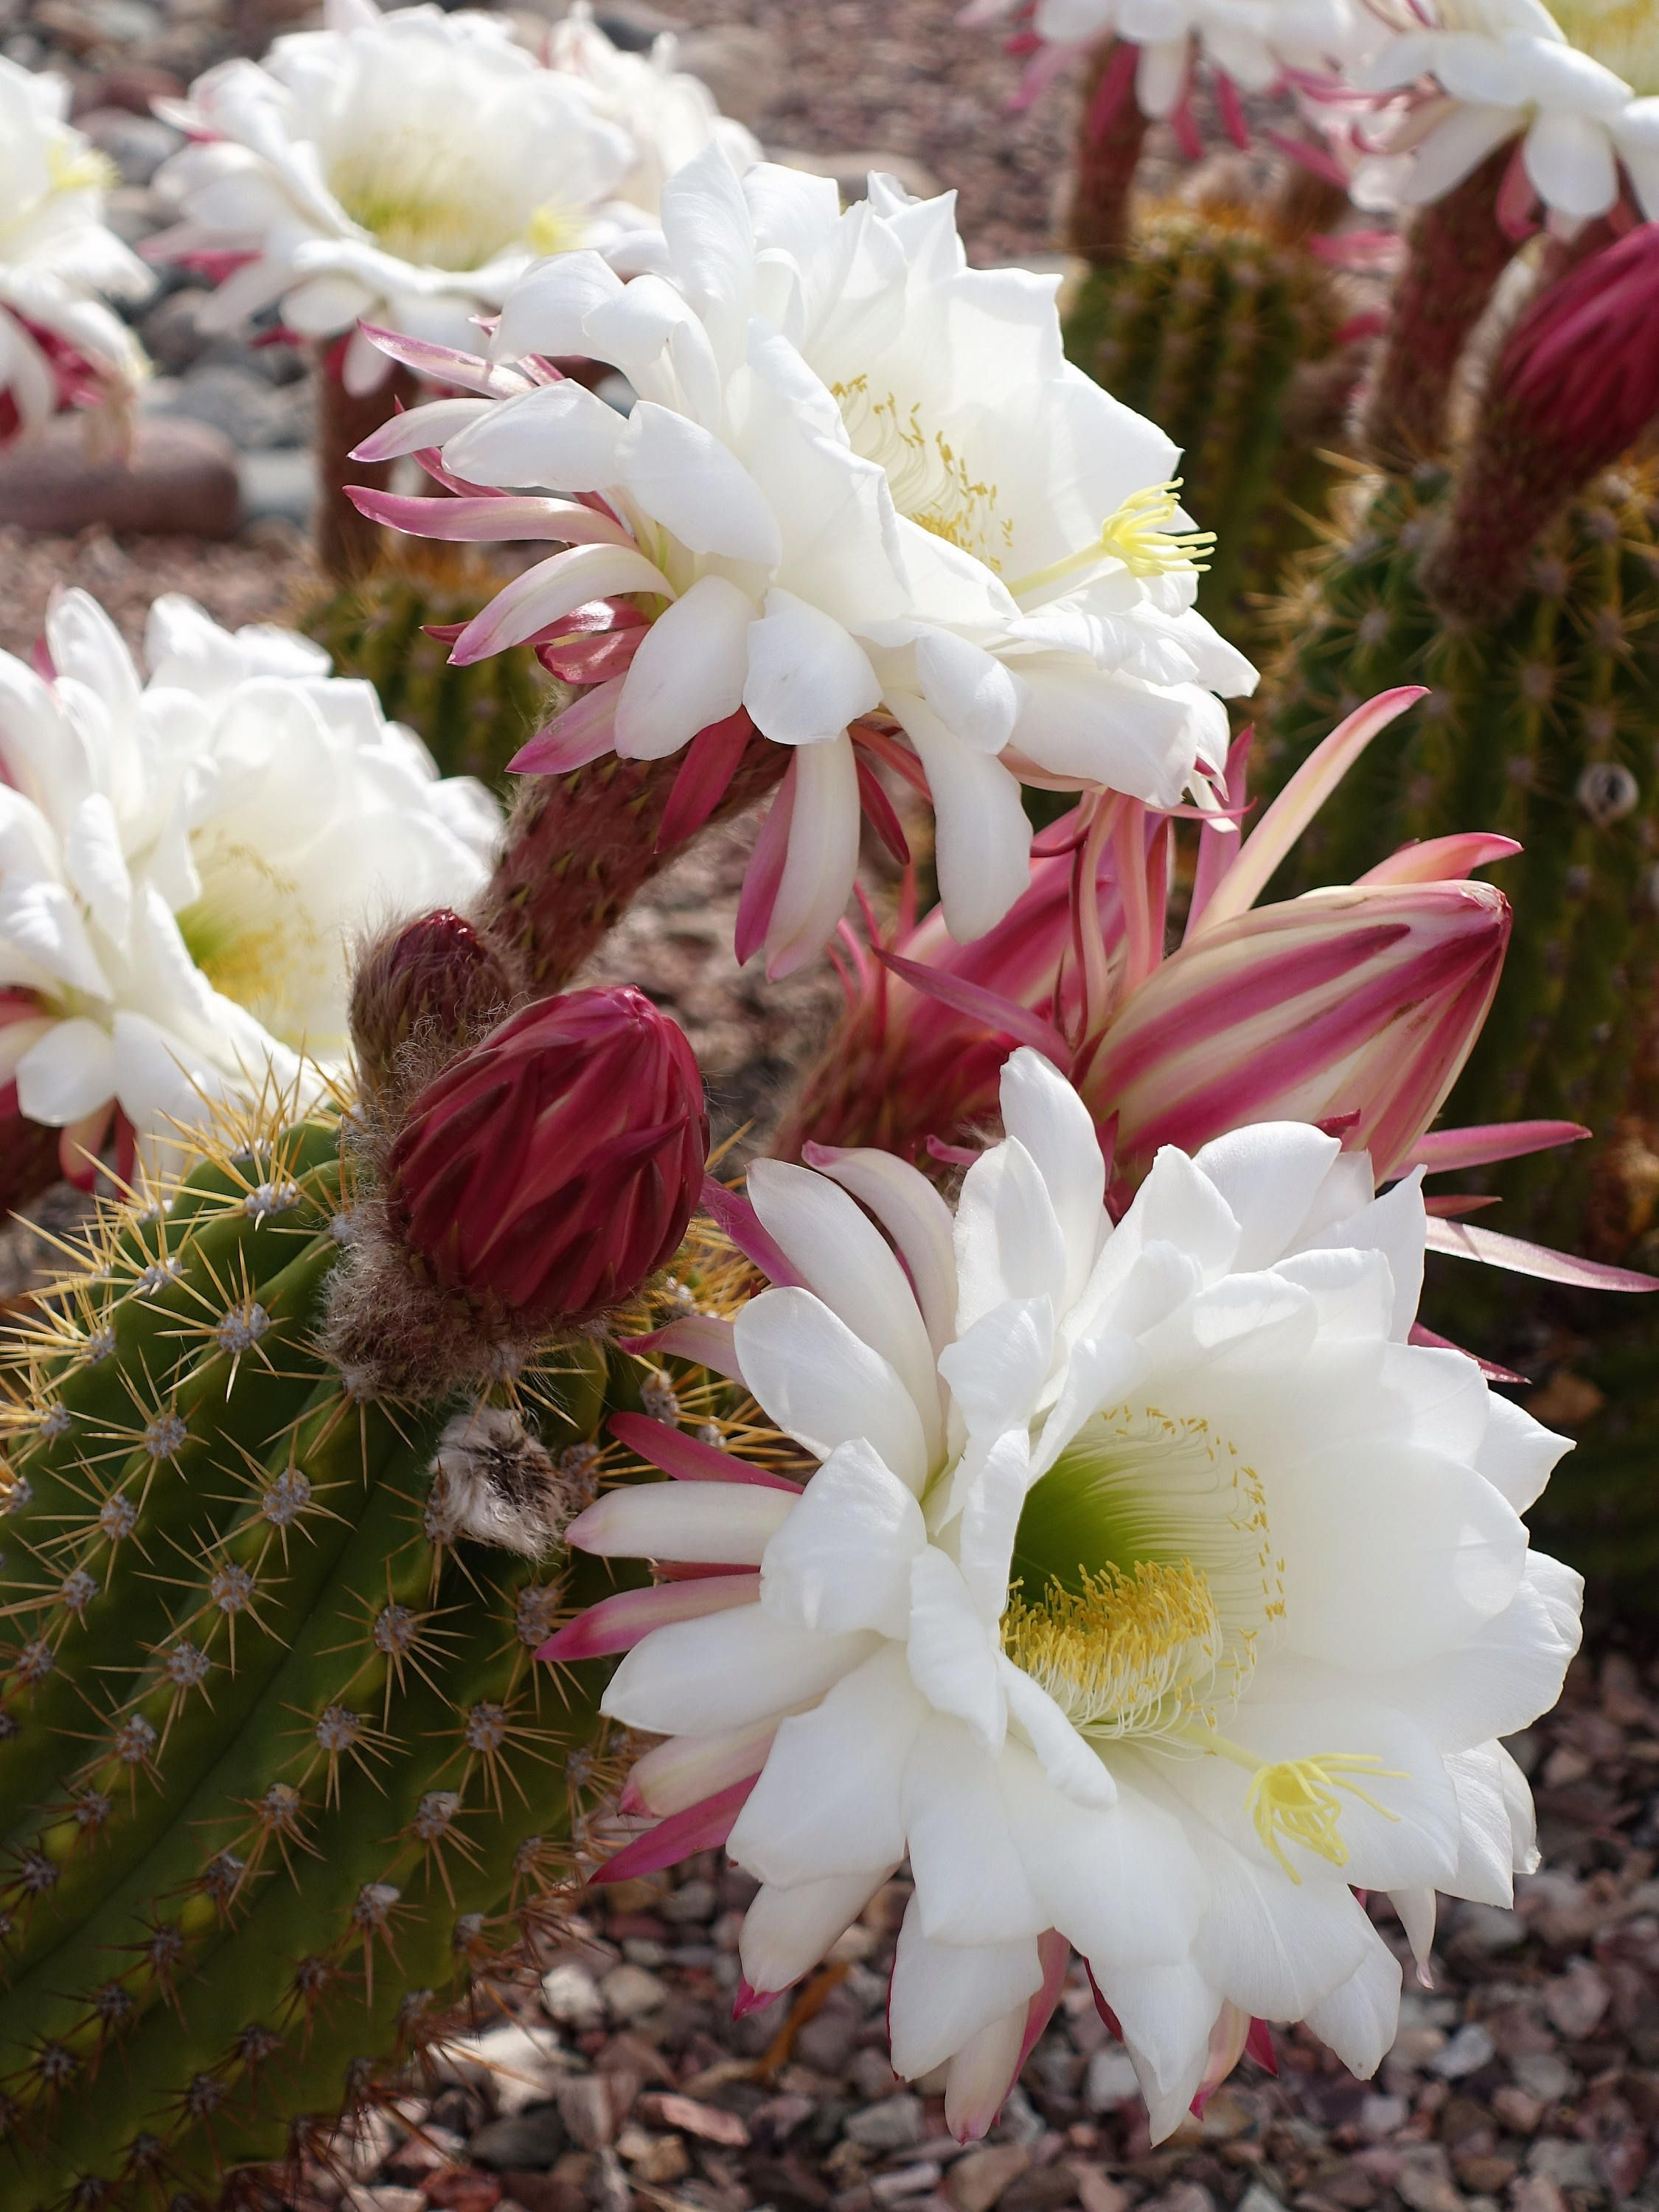 White Cactus Flowers Arizona Instant Digital Download Photograph Art